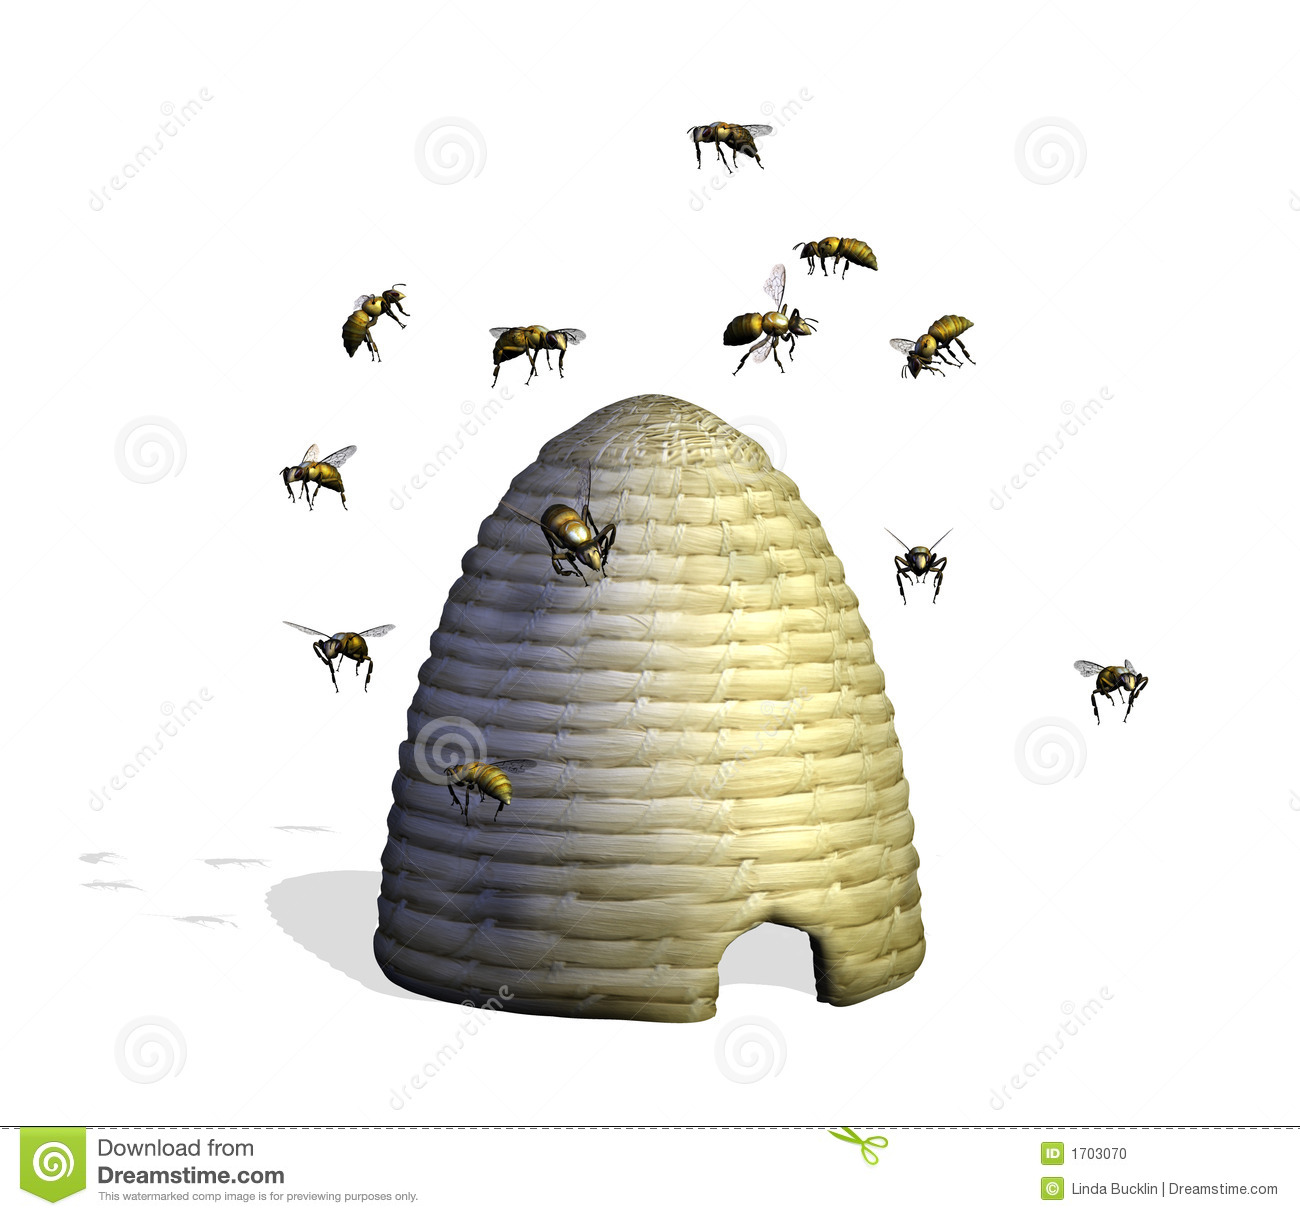 Download Bee Hive with Bees stock illustration. Illustration of bumblebees - 1703070